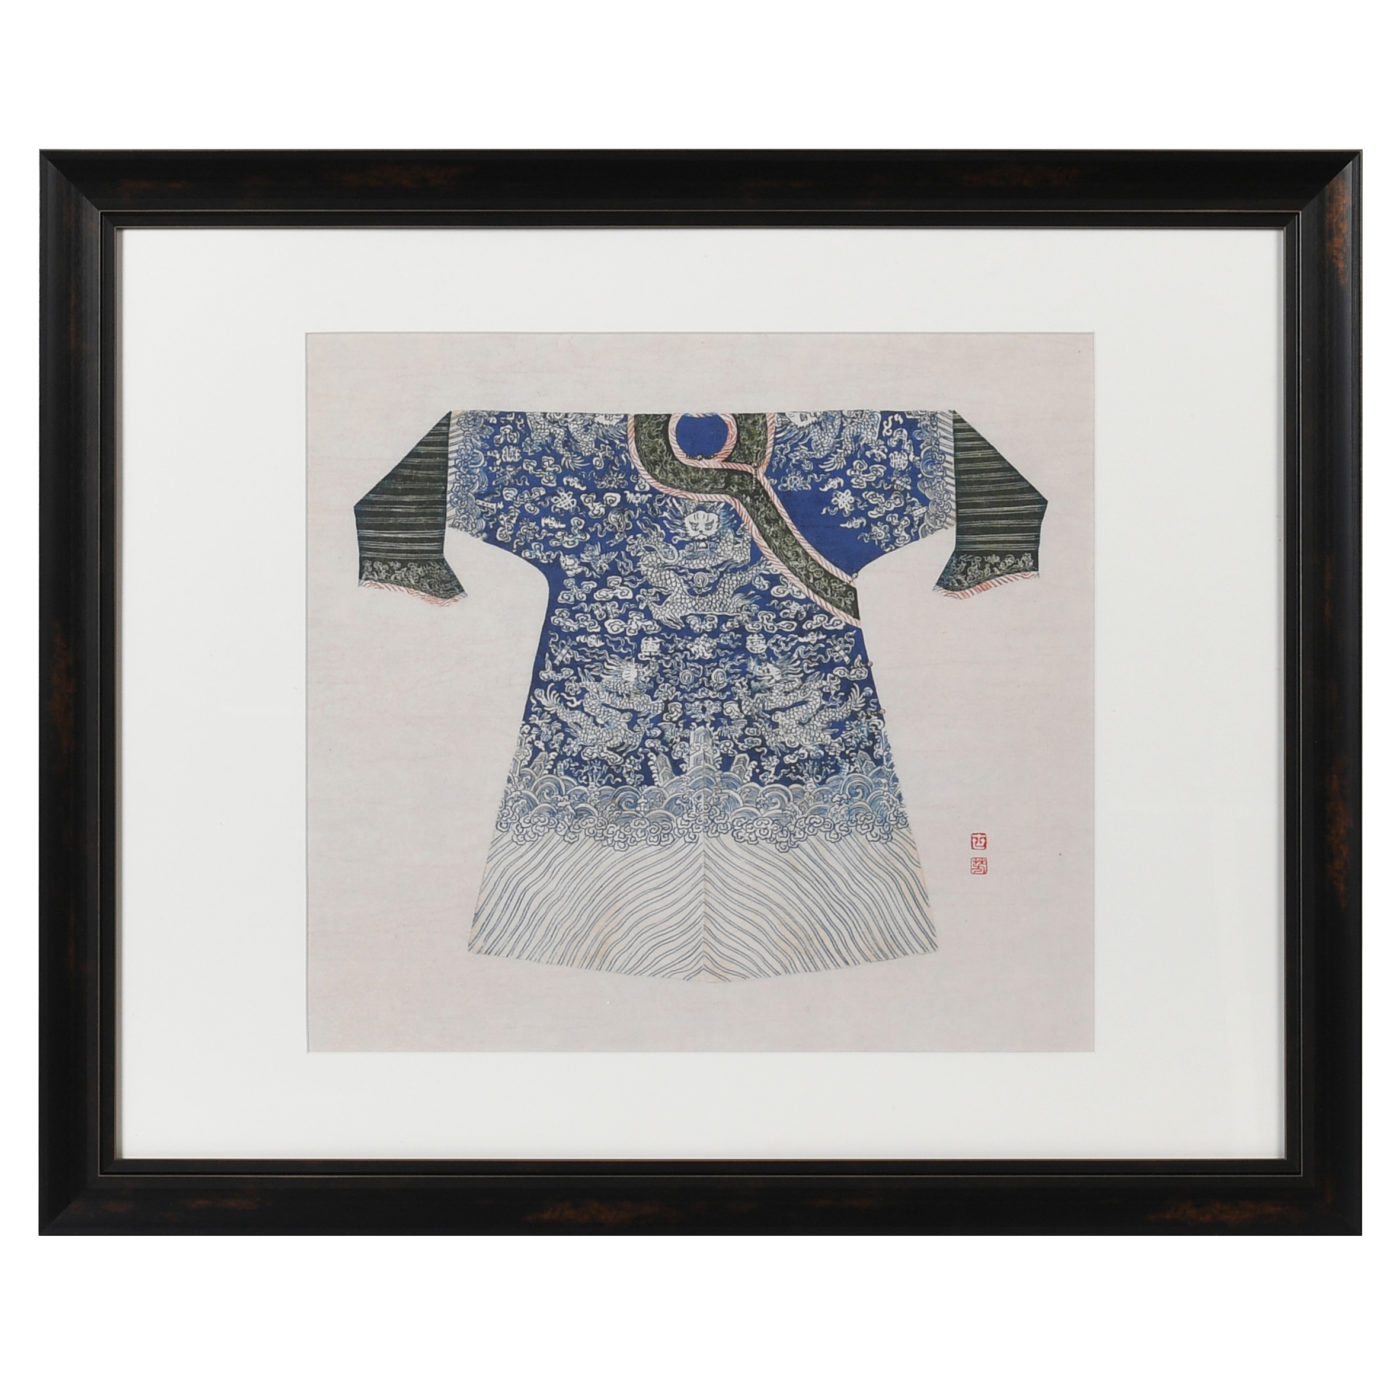 image of chinese blue coat in frame